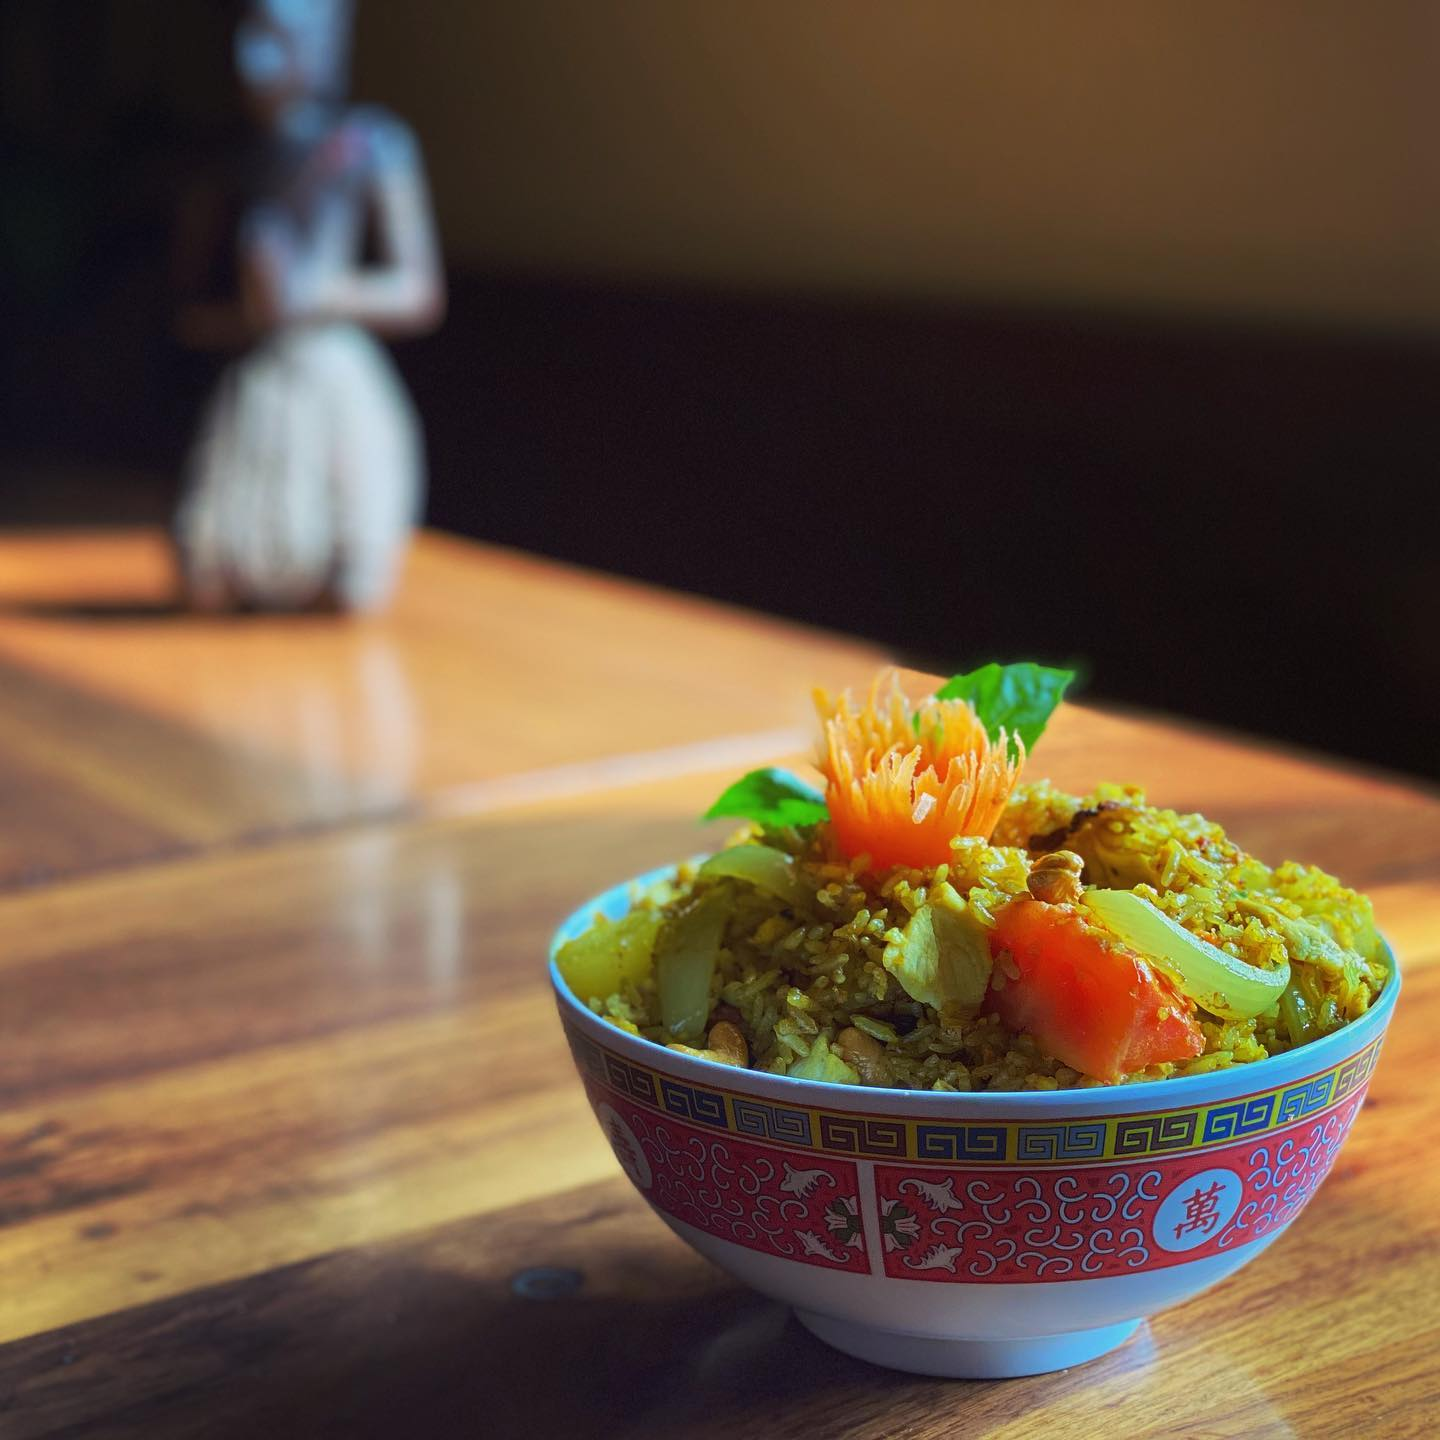 A small bowl is filled with yellow rice studded with tomatoes on a wooden table with a stone buddha in the background